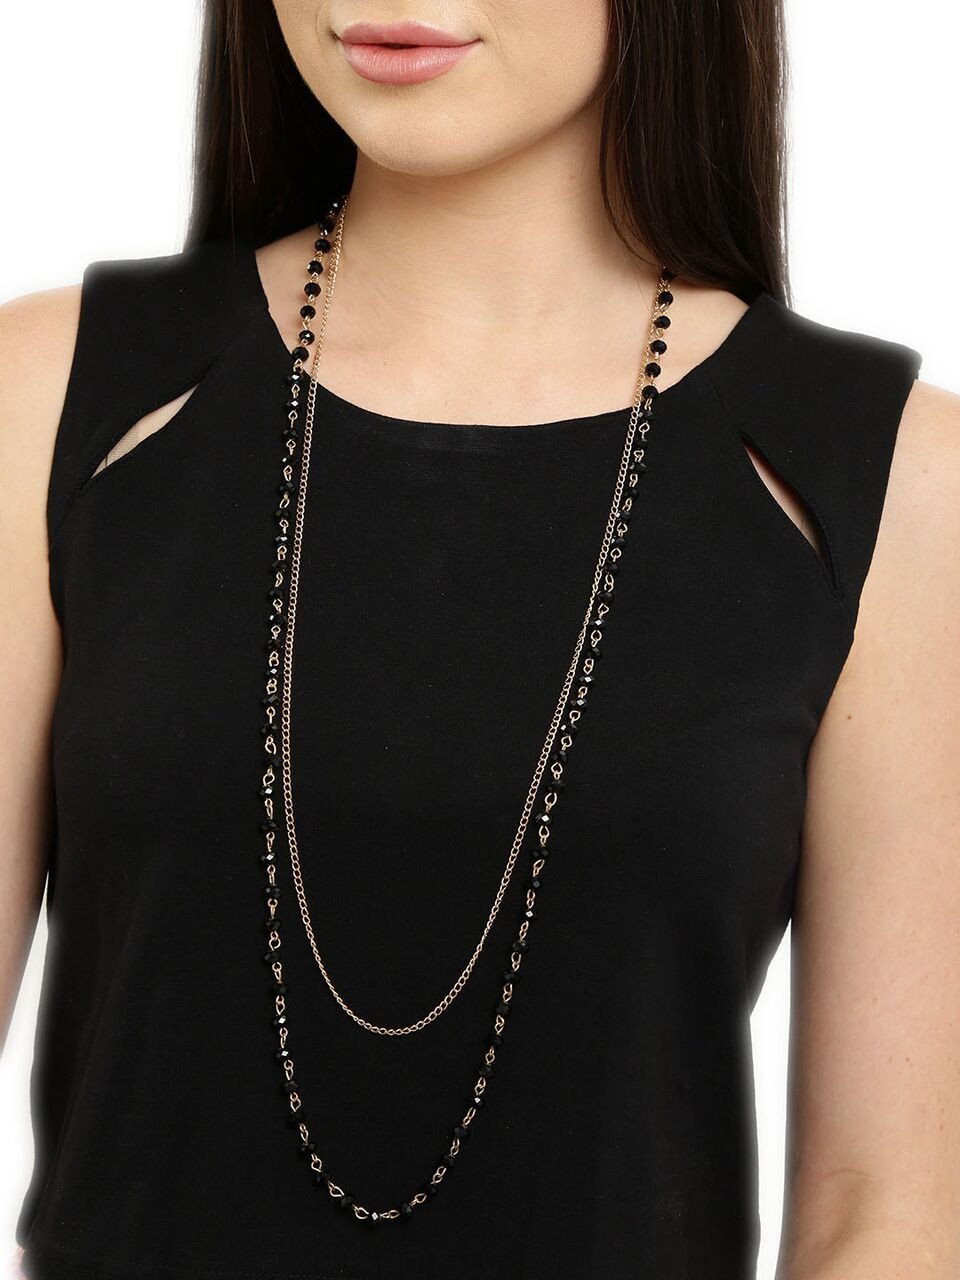 Blacky Glaxay Necklace